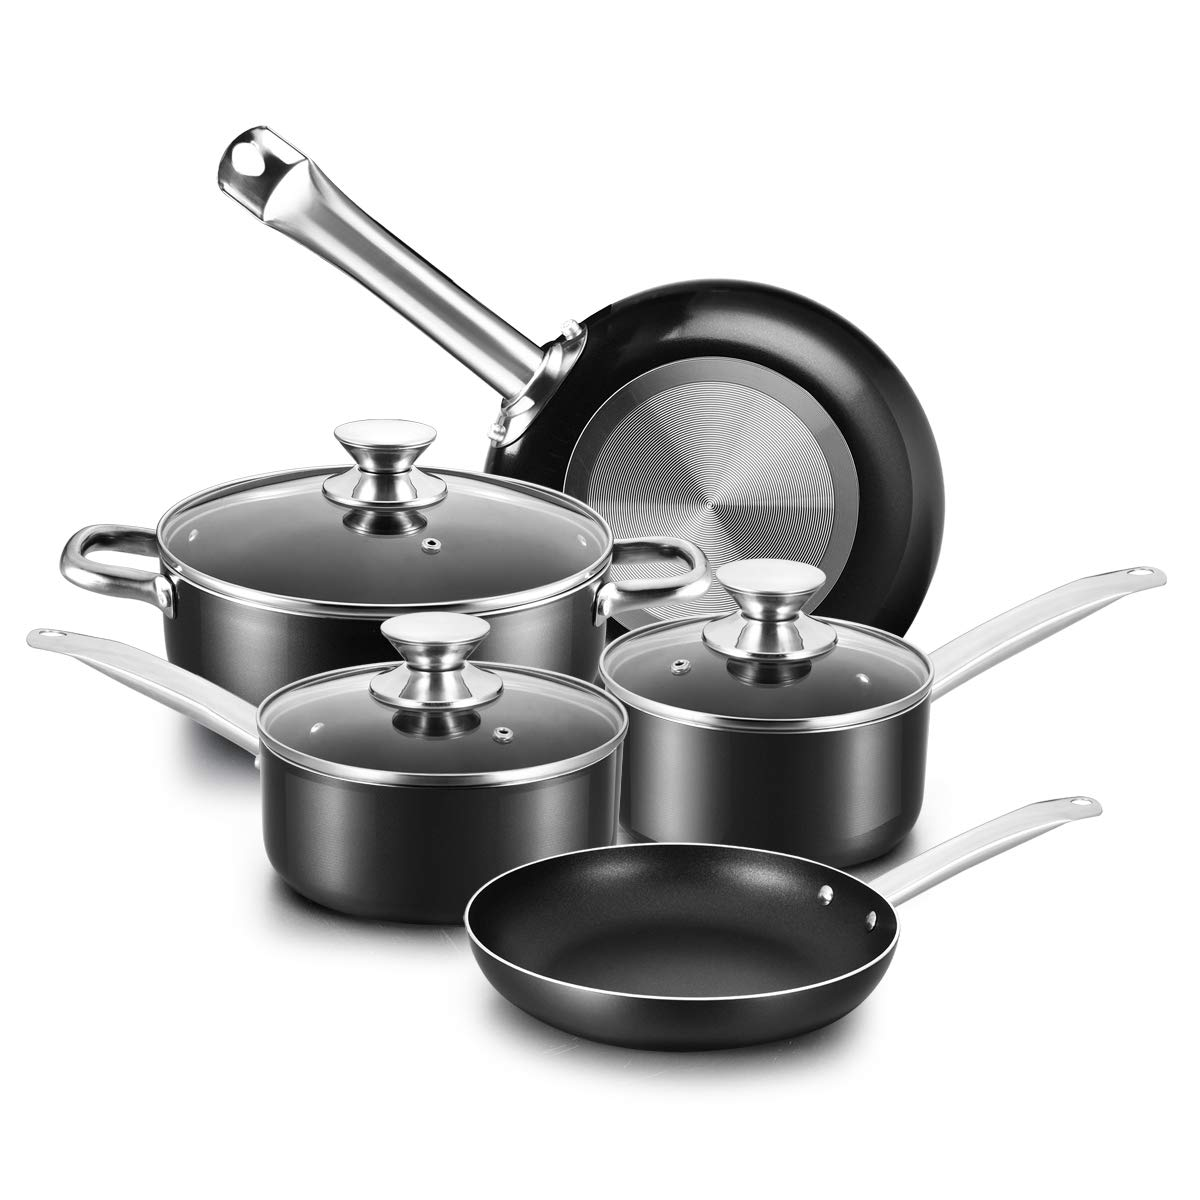 COOKER KING Non-Stick Cookware Set, 8 Piece Nonstick Pots and Pans Set with Glass Lids, Oven Safe, Dishwasher Safe, Stainless Steel Handles, Night Black